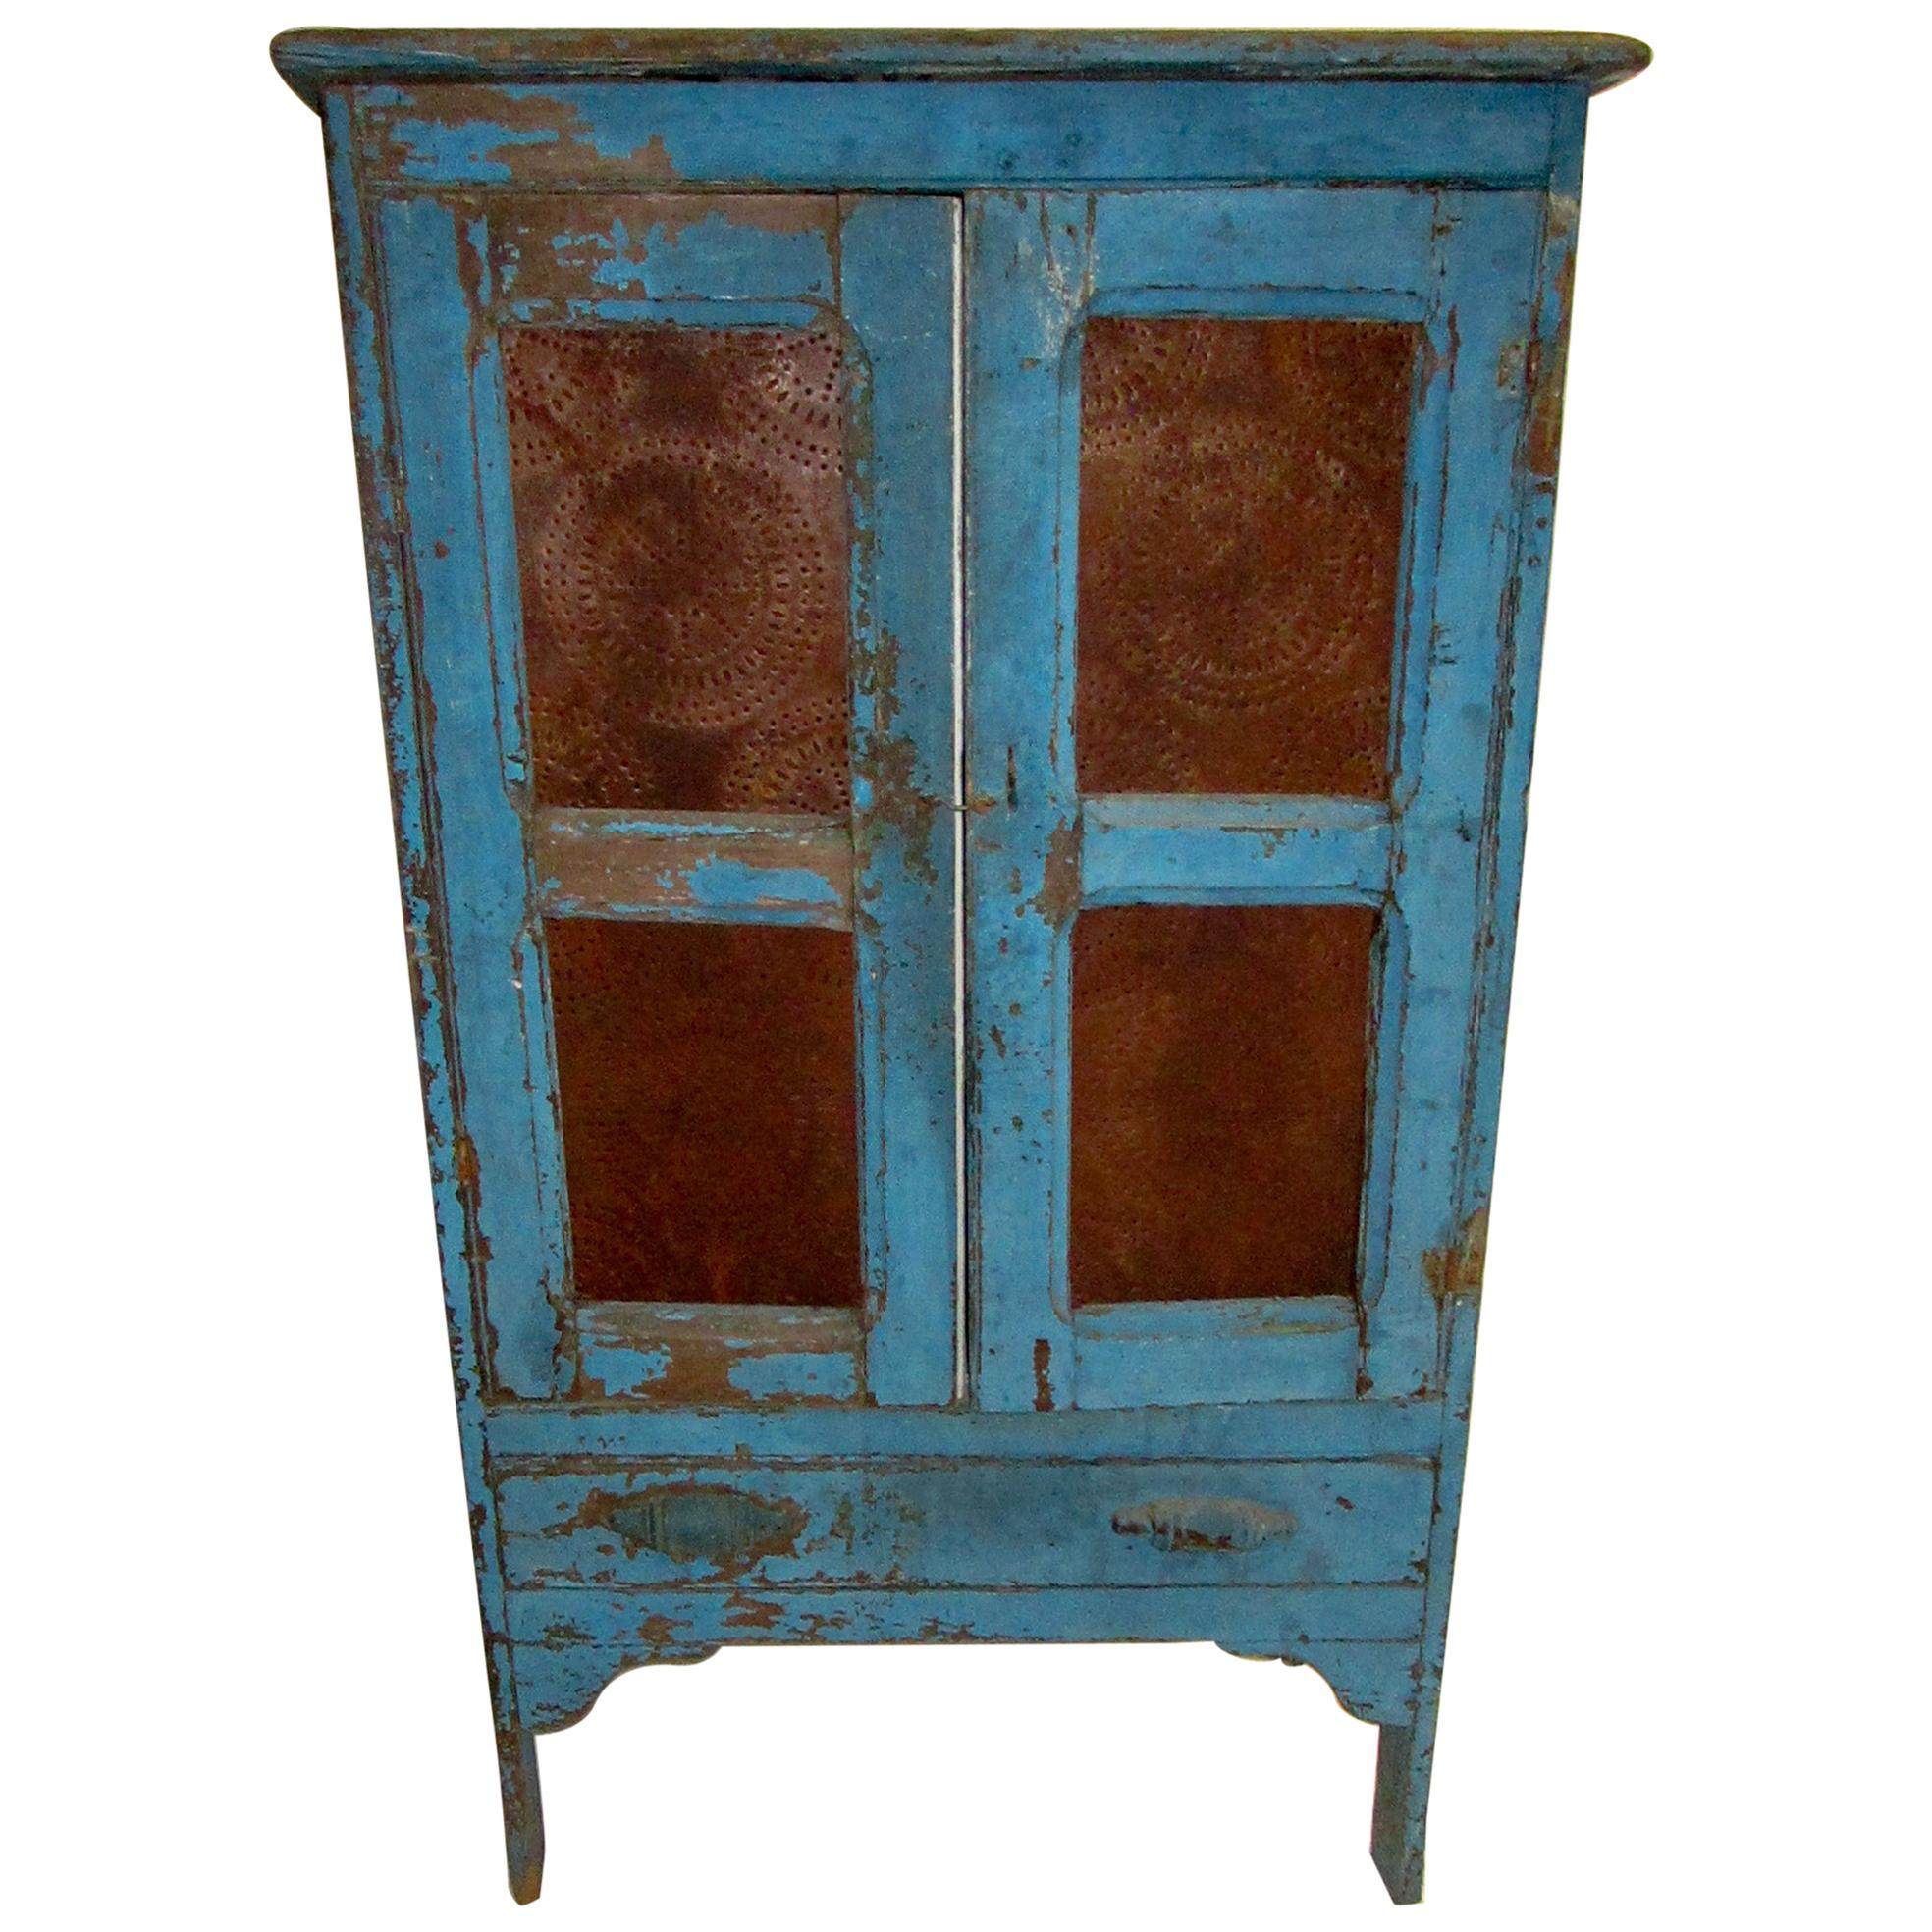 19th Century American Primitive Southern Pie Safe with Distressed Blue Paint